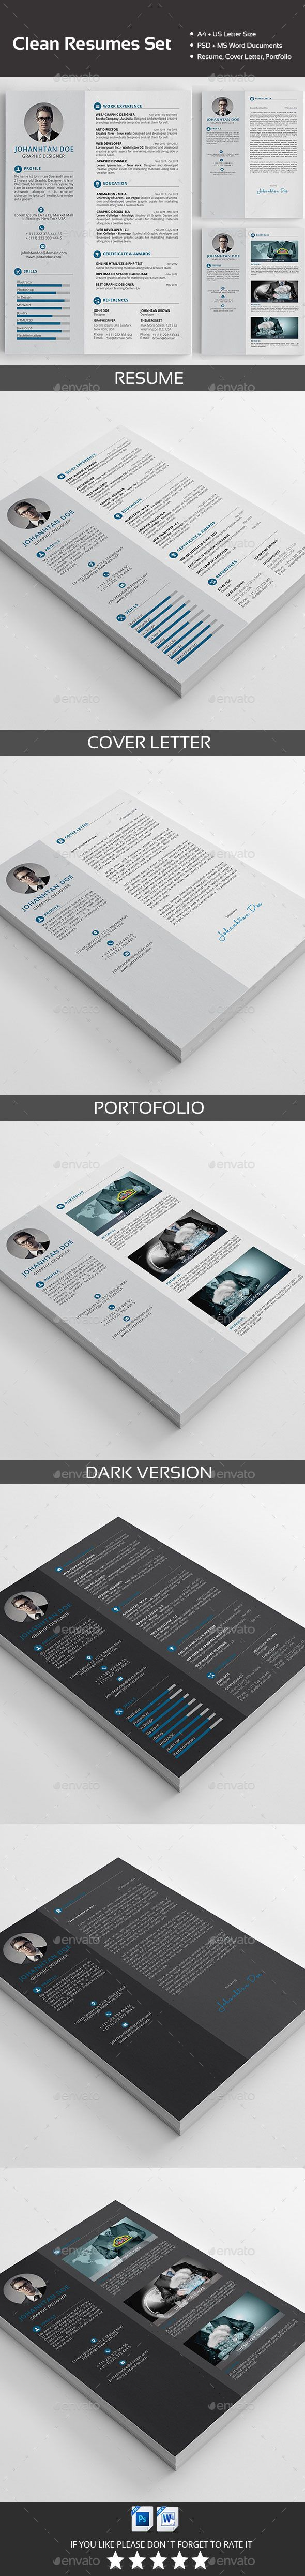 A Clean and Sharp Resume Template. You can show your professionalism only with a Clean and Sharp Resume.